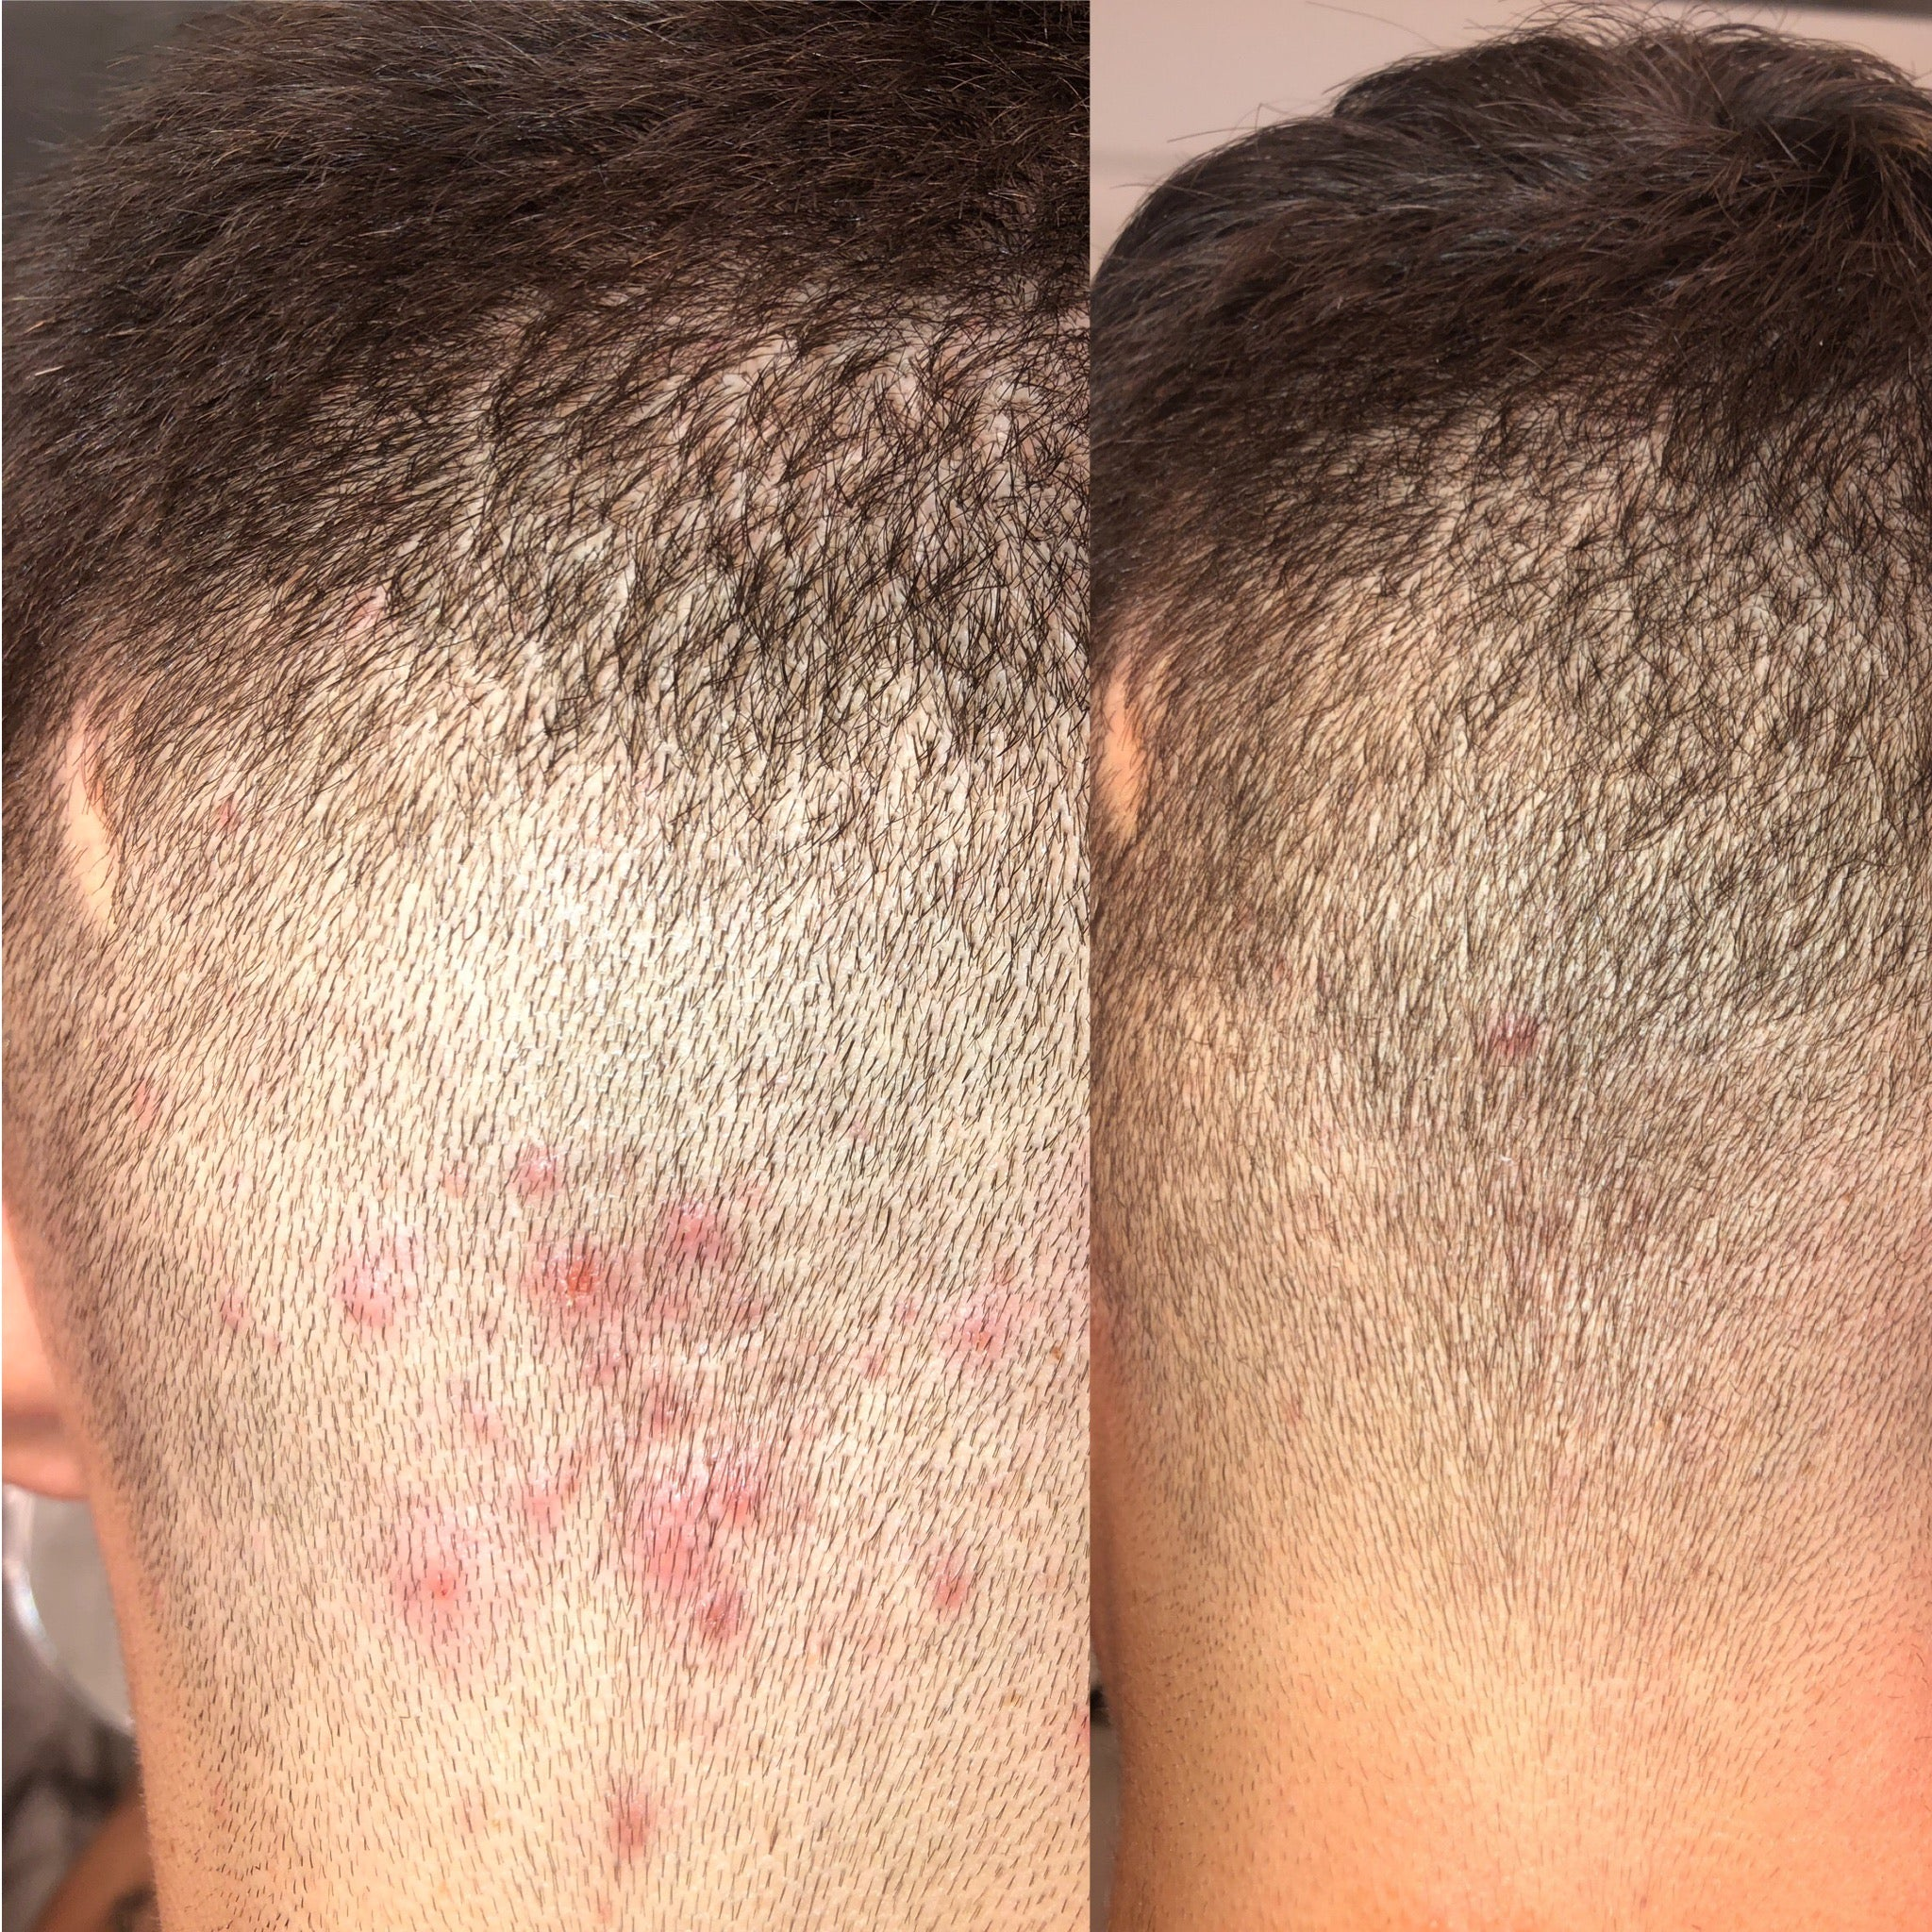 almond clear is a good choice for folliculitis treatment